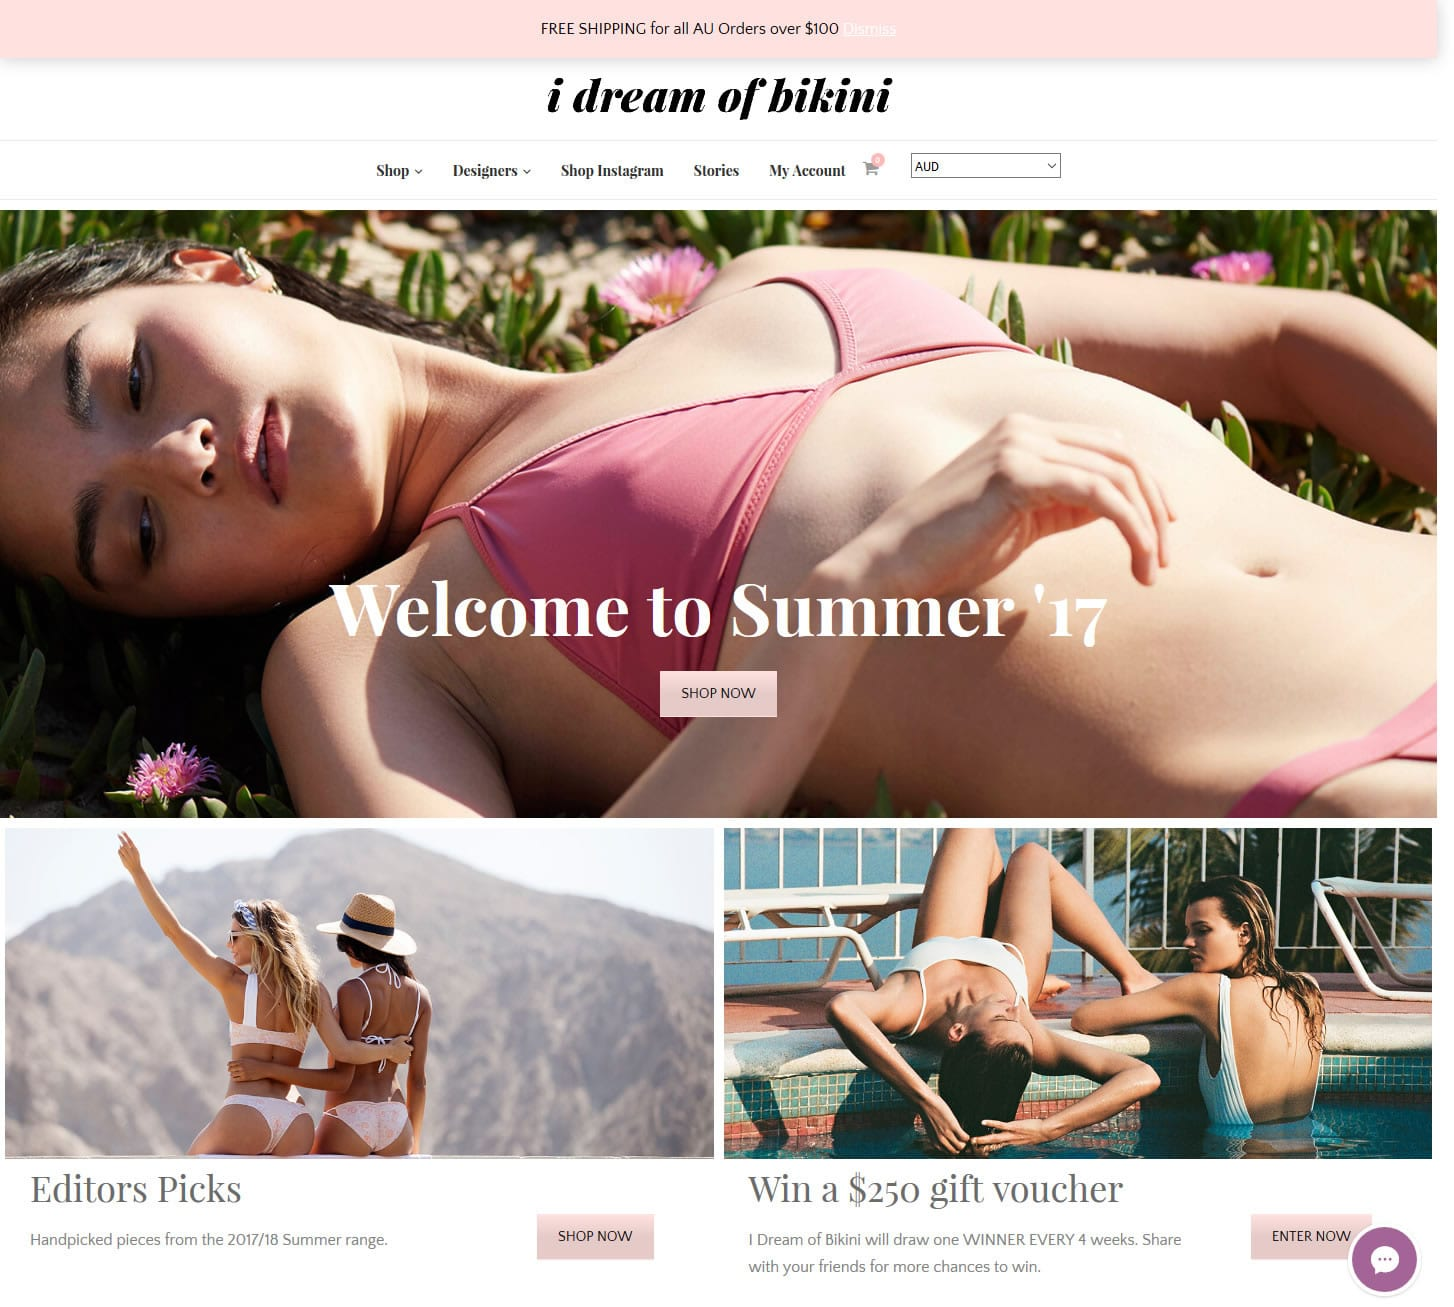 I dream of bikini website